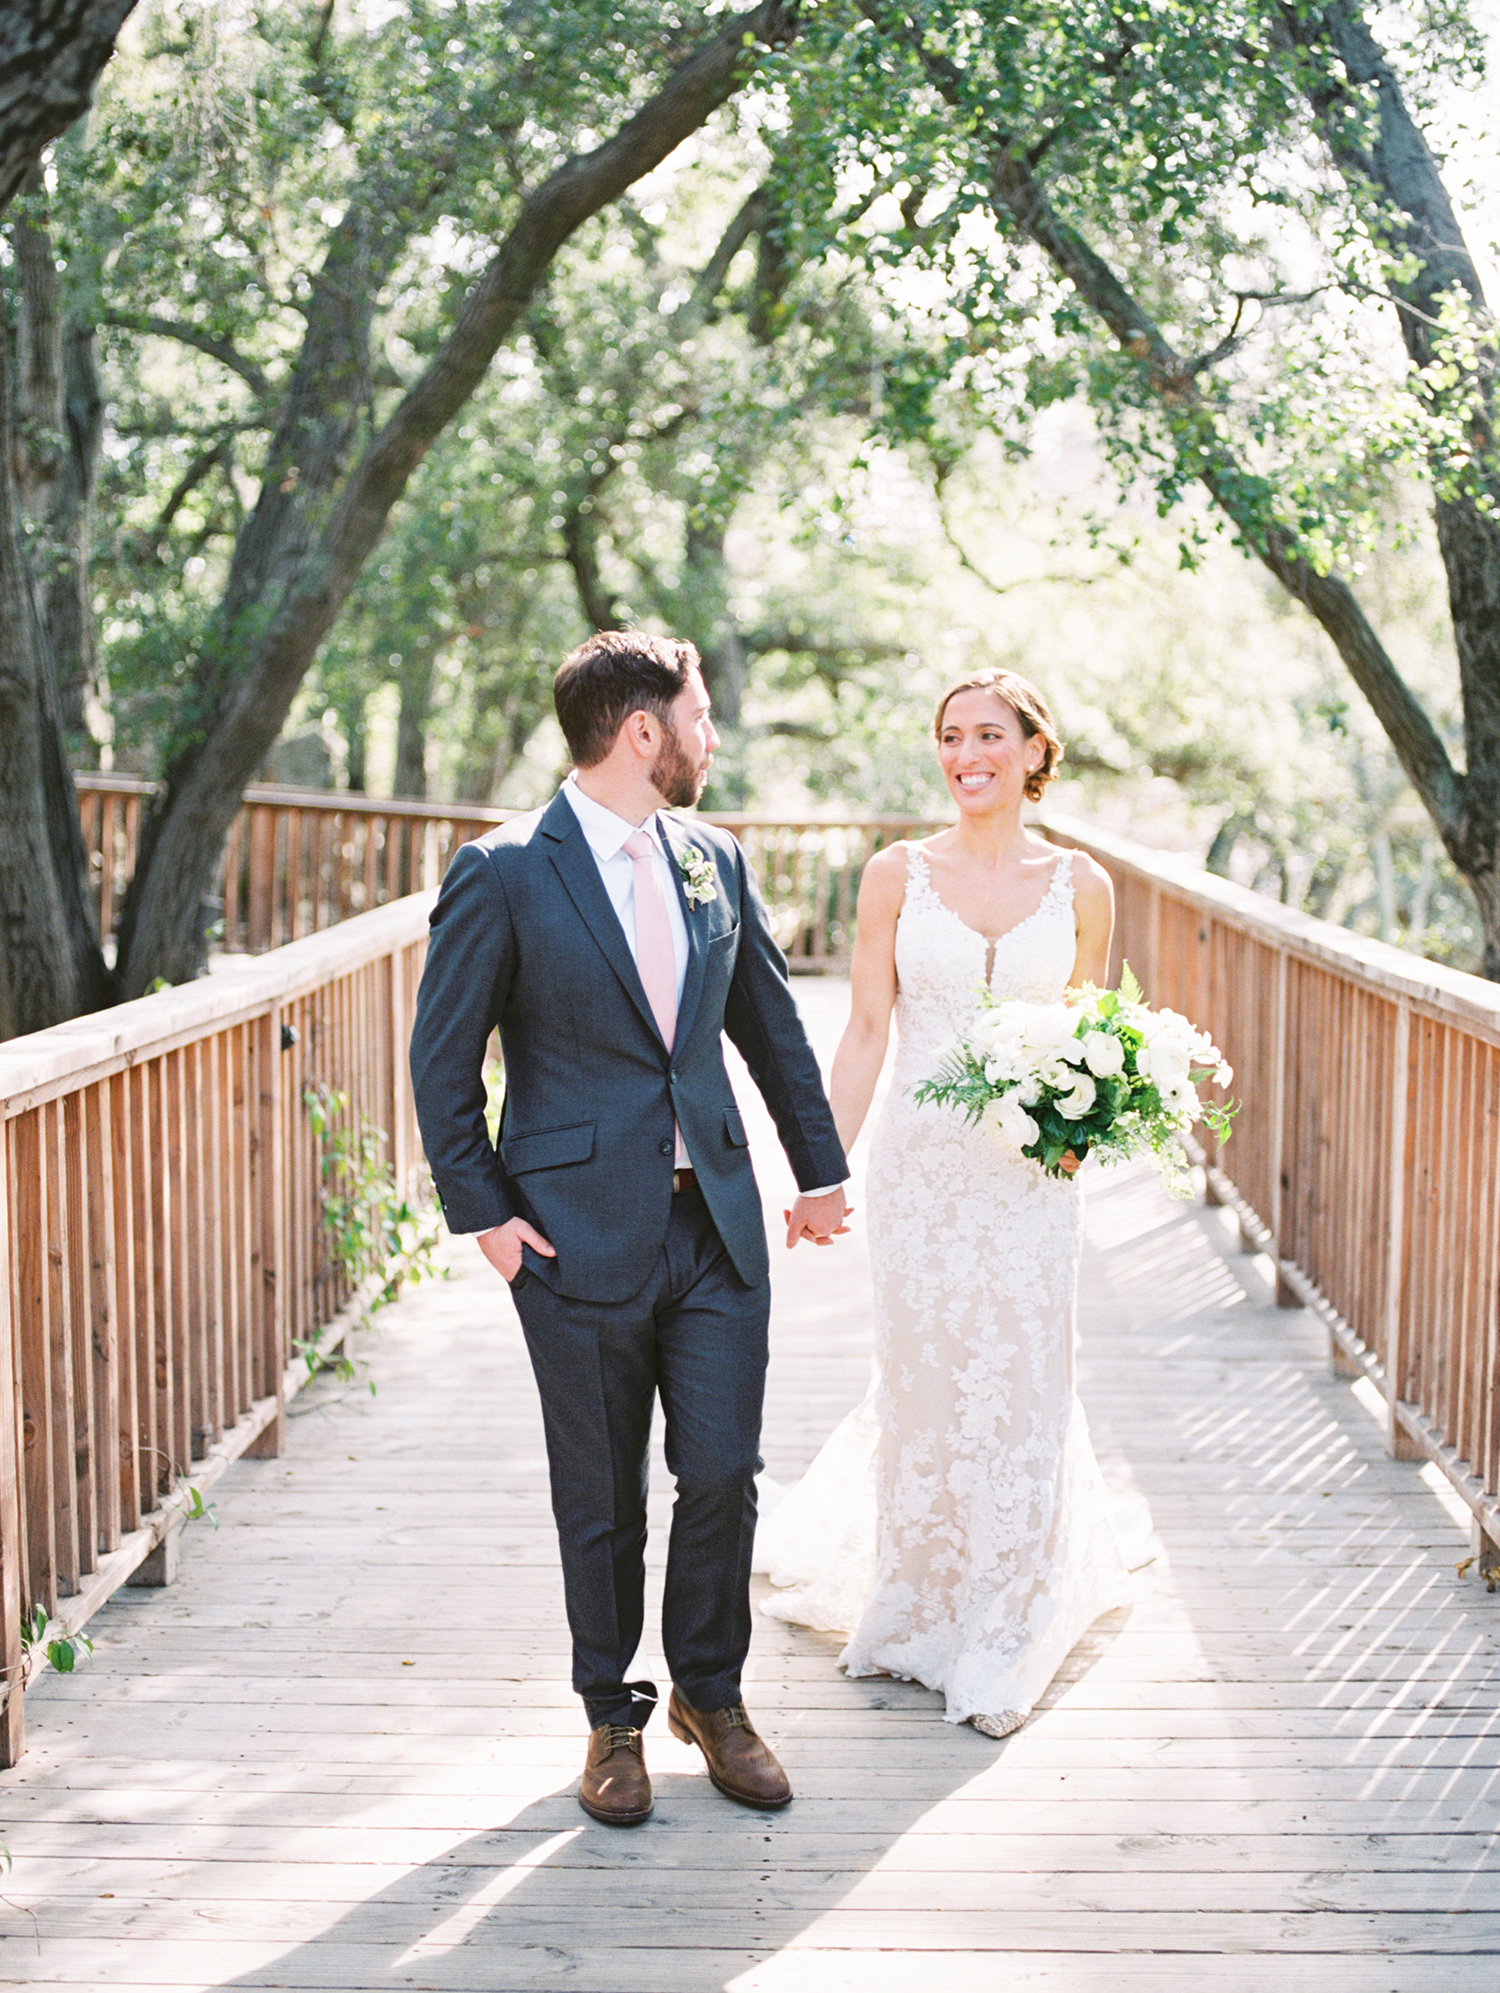 This Couple Exchanged Vows in Malibu, Surrounded by Oak Trees and Natural Waterfalls